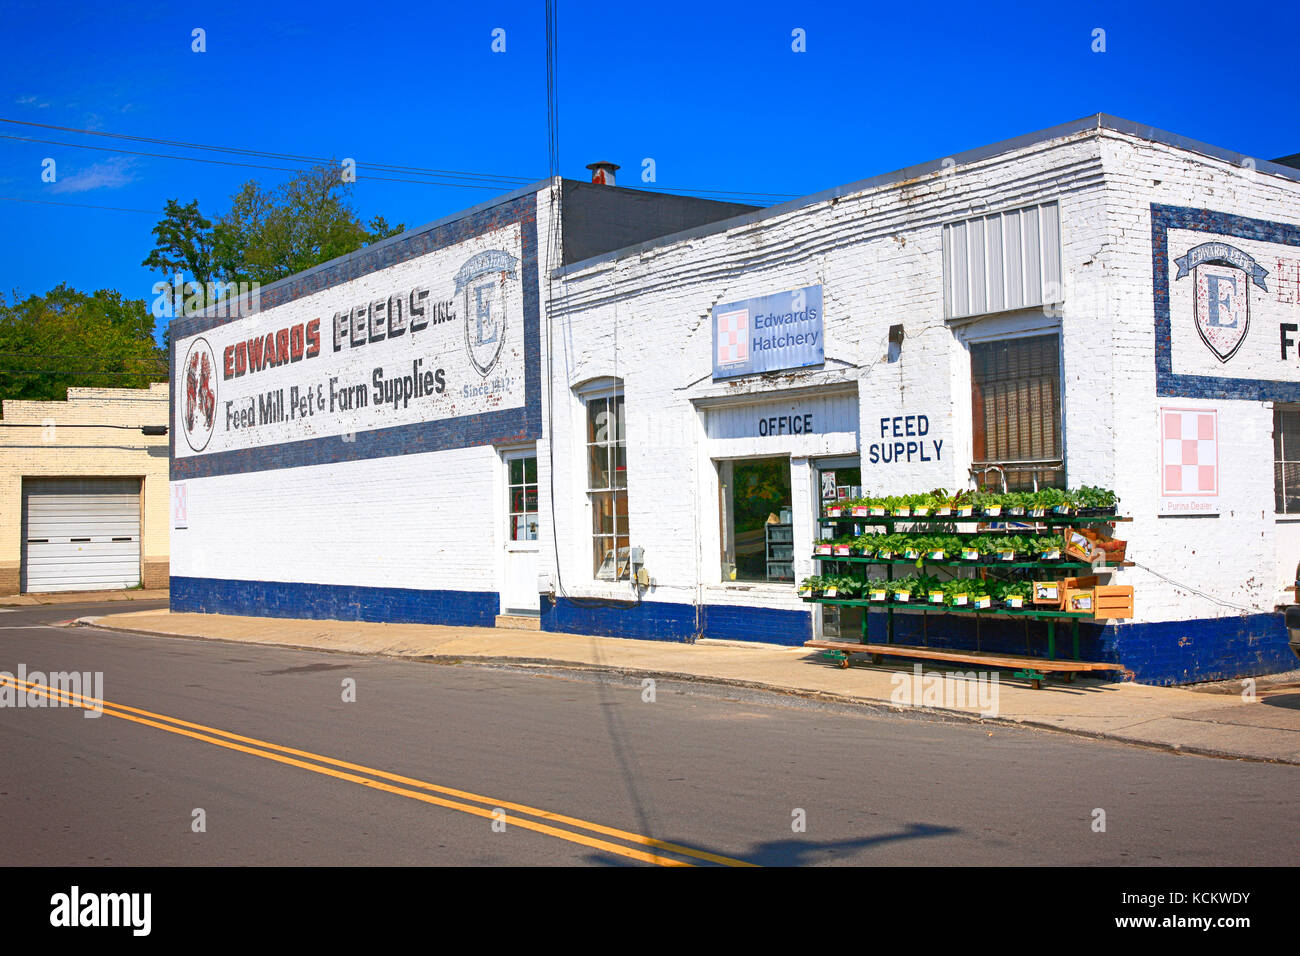 Outside Edwards Feed And Farm Supplies Business In Lebanon TN, USA   Stock  Image